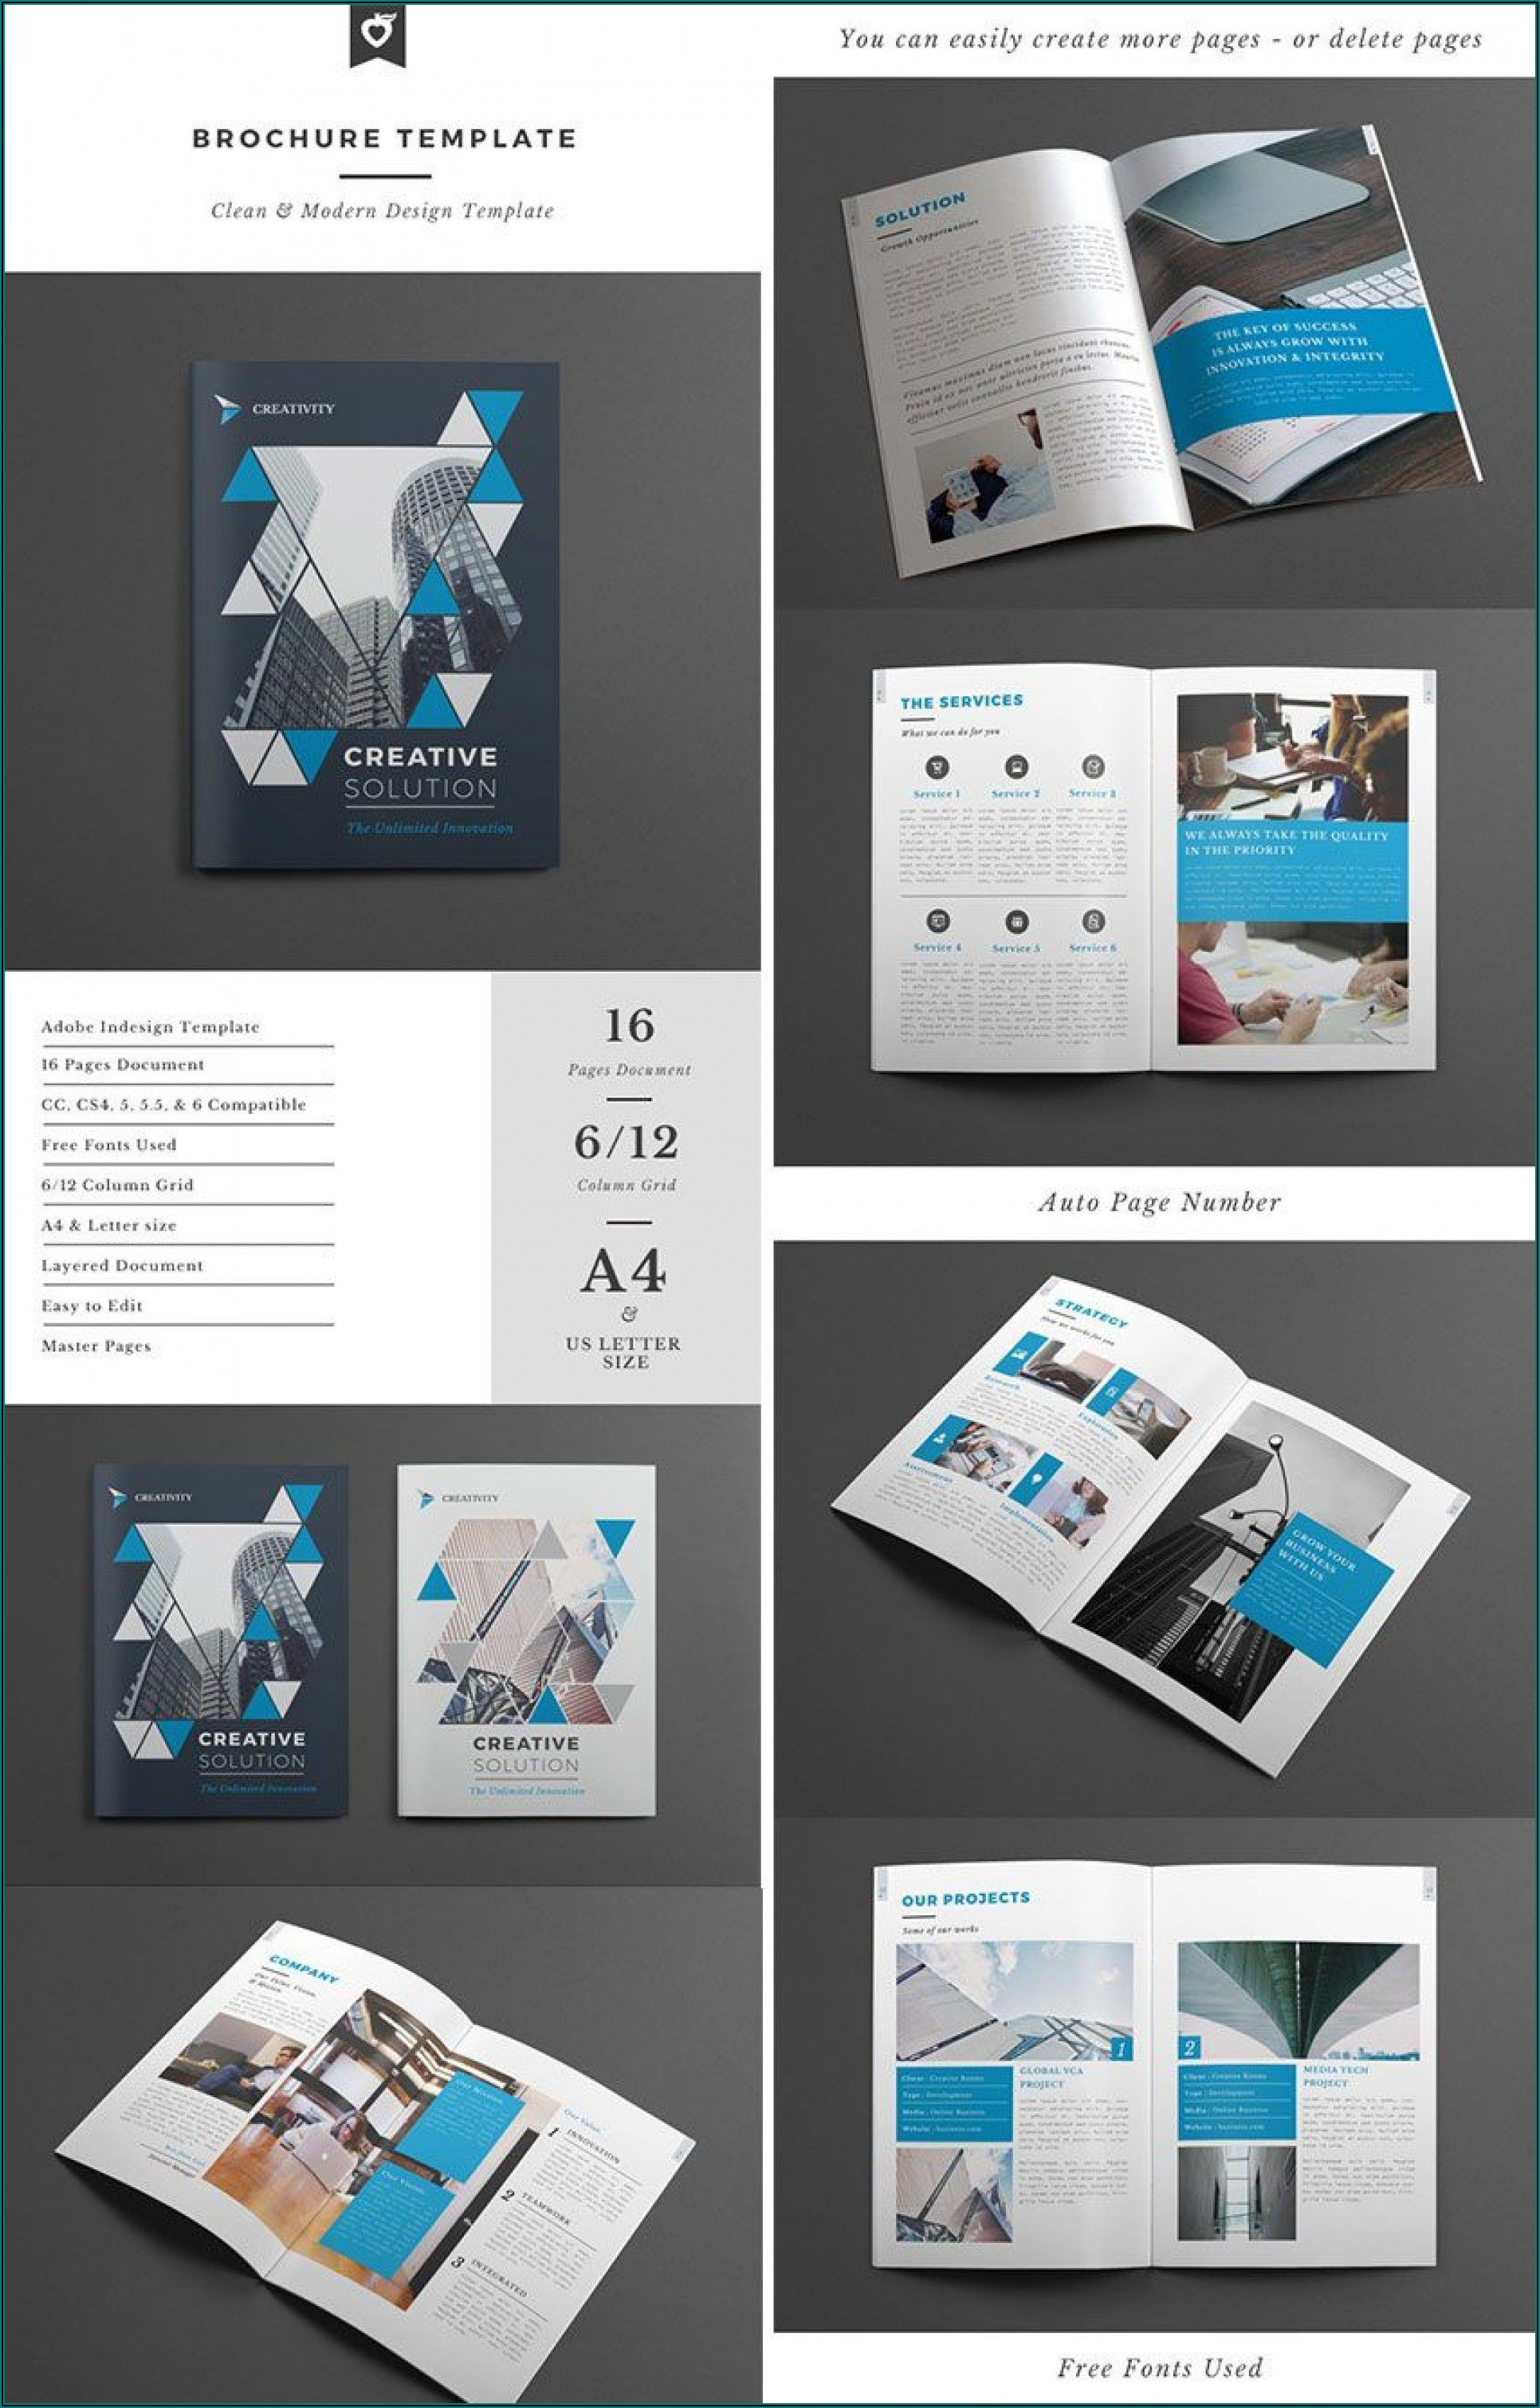 Adobe Indesign Brochure Template Free